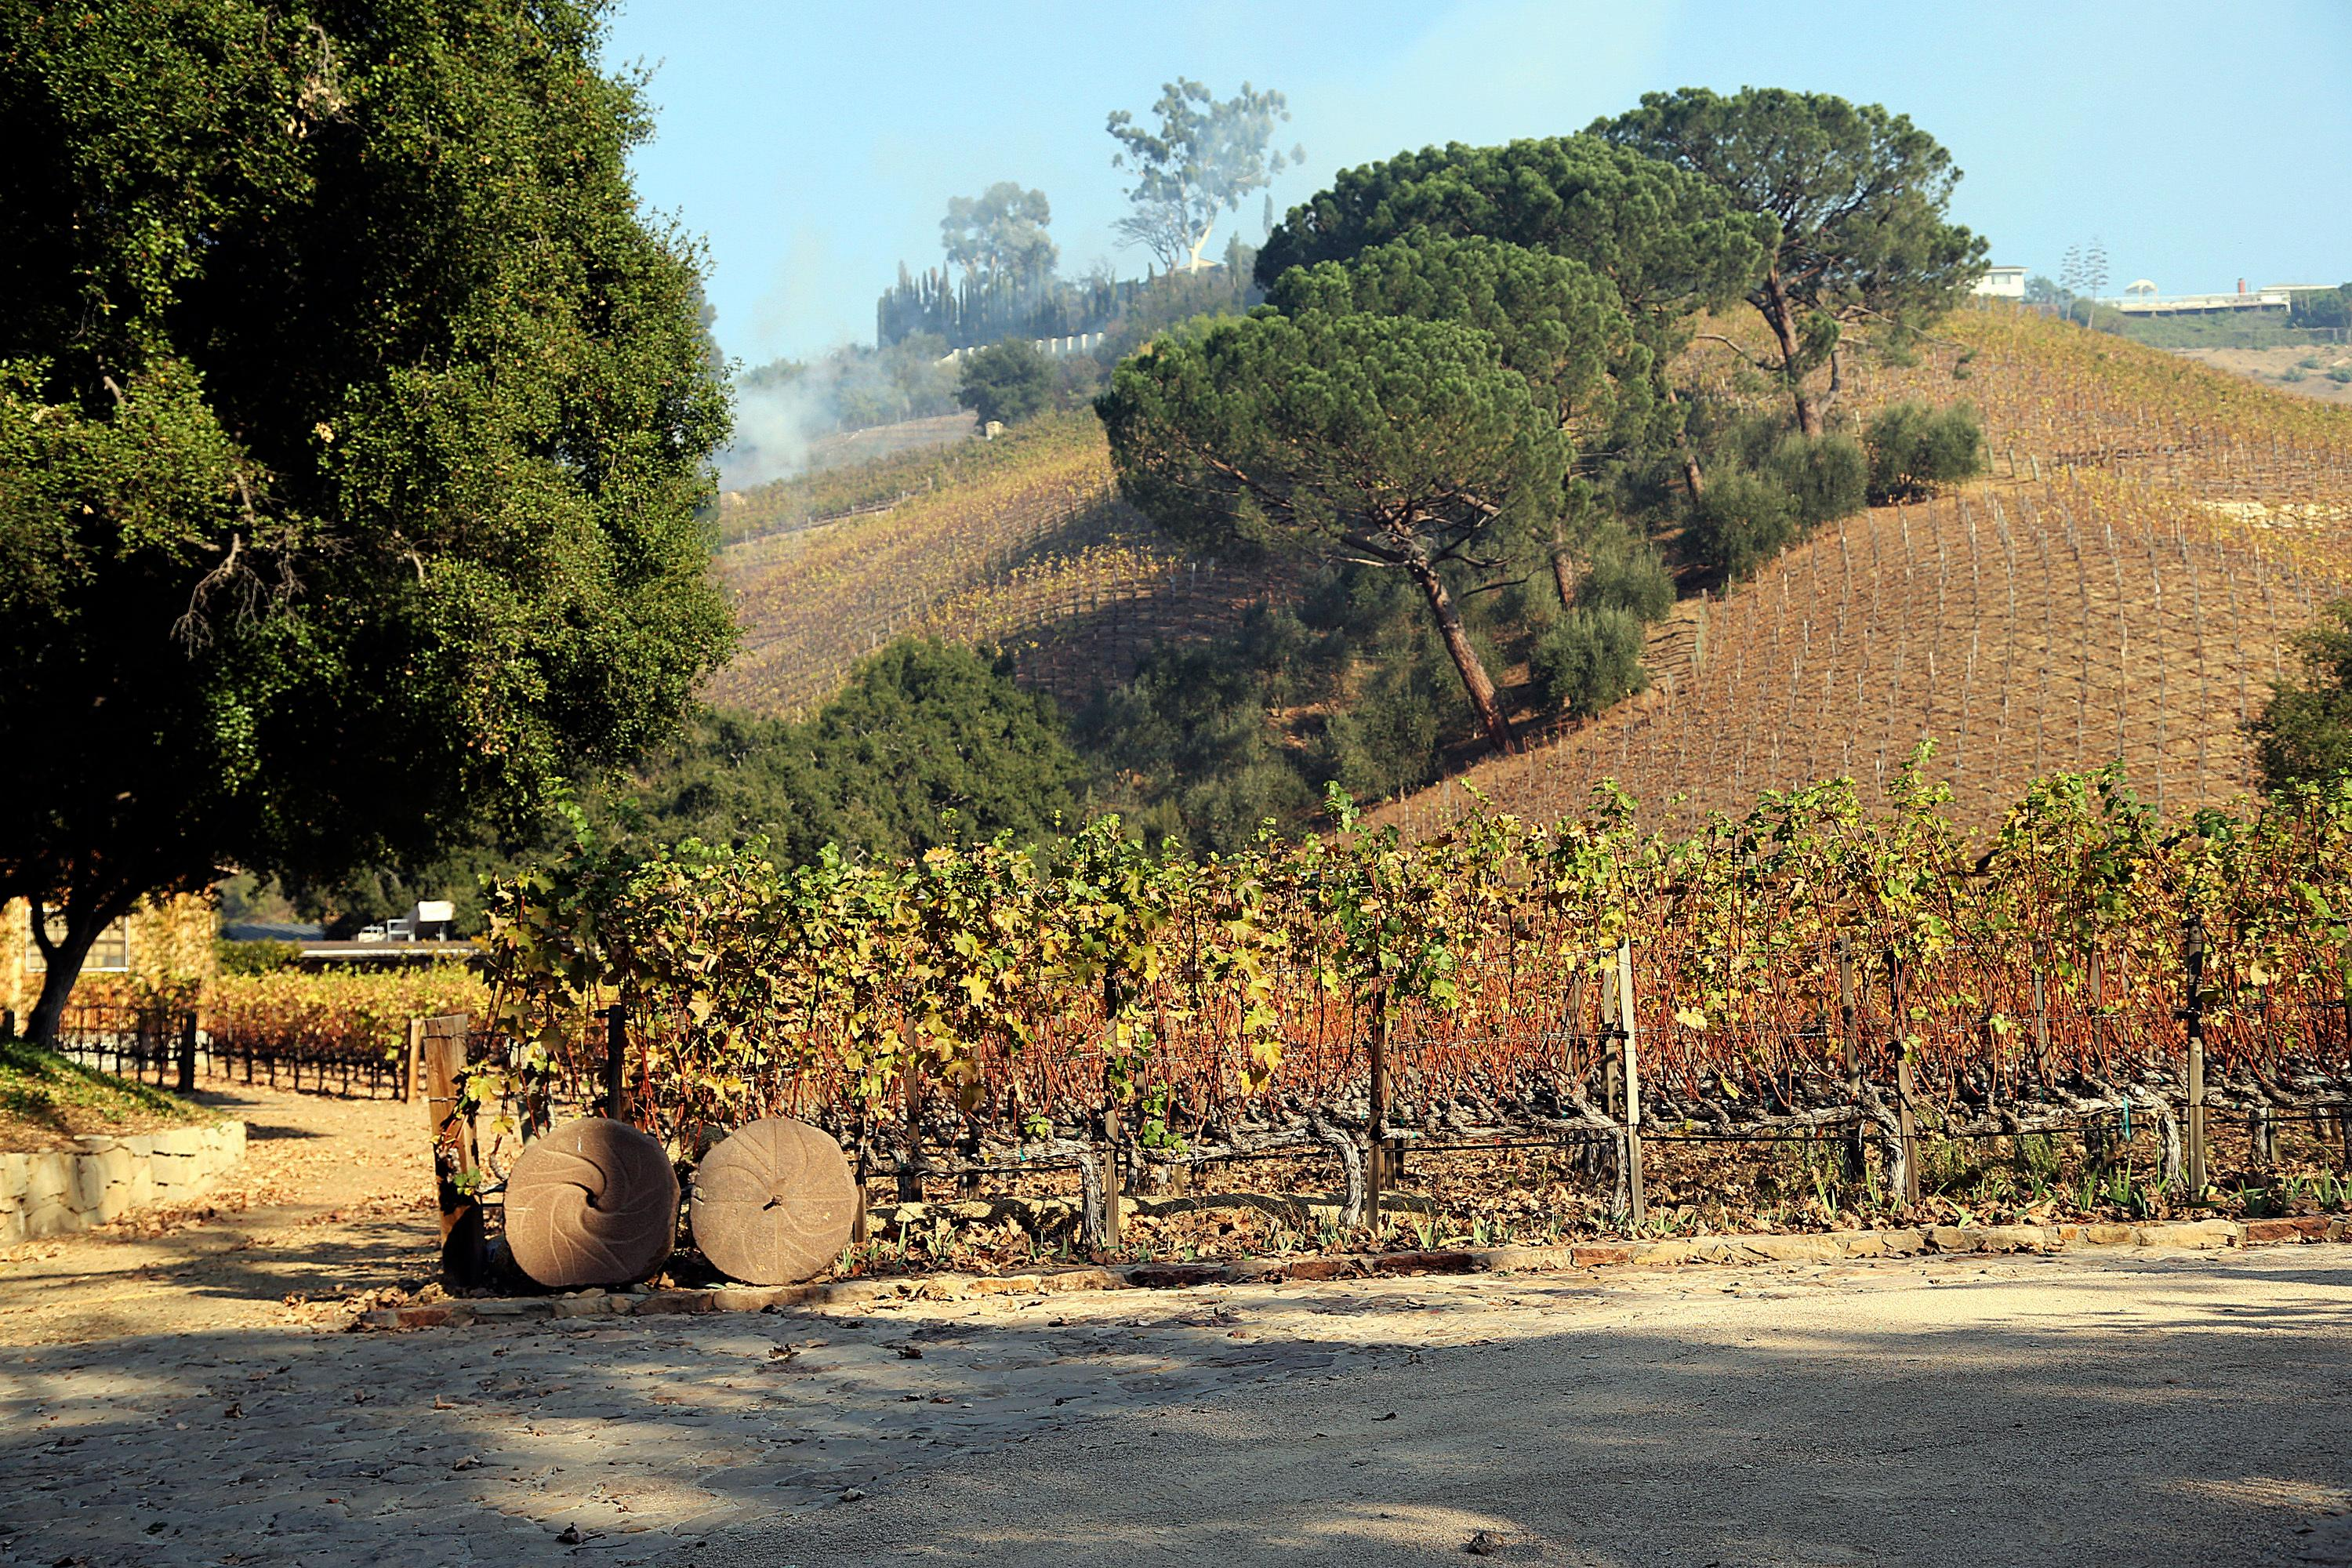 This Wednesday, Dec. 6, 2017 photo shows media mogul Rupert Murdoch's 16-acre (6.5-hectare) Moraga Vineyards estate, where about 7 acres (2.8 hectares) of vines appeared to have been damaged after a wildfire swept through the Bel Air district of Los Angeles. (AP Photo/Reed Saxon)